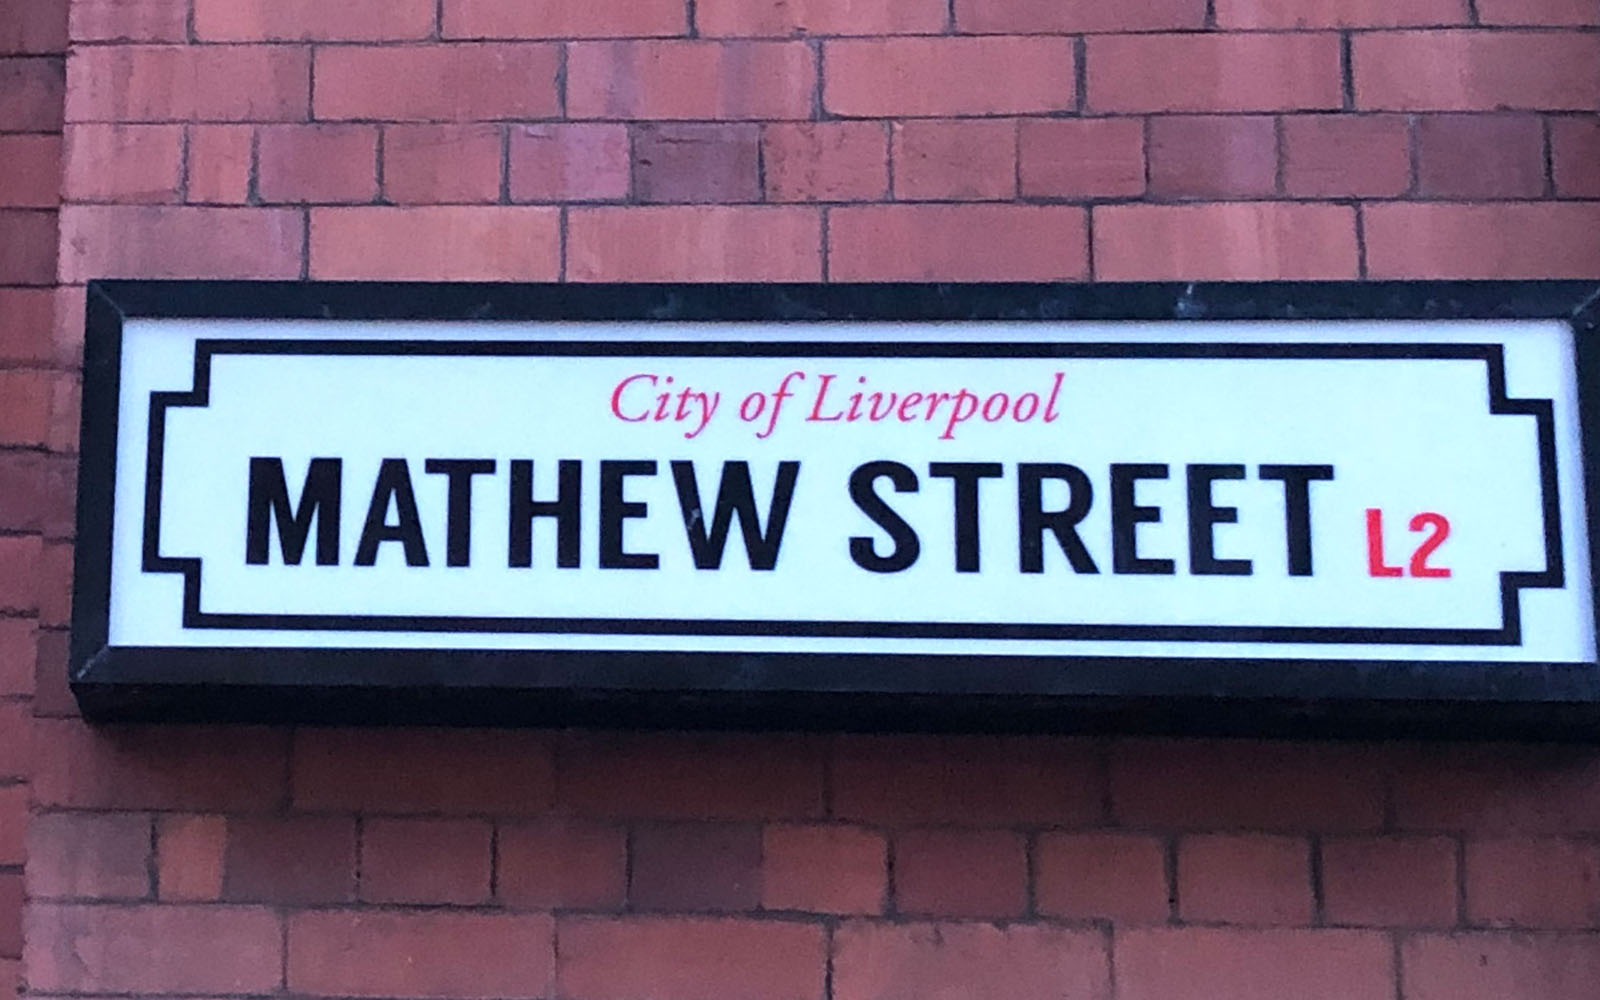 Mathew street, dove si trova il Cavern Club.